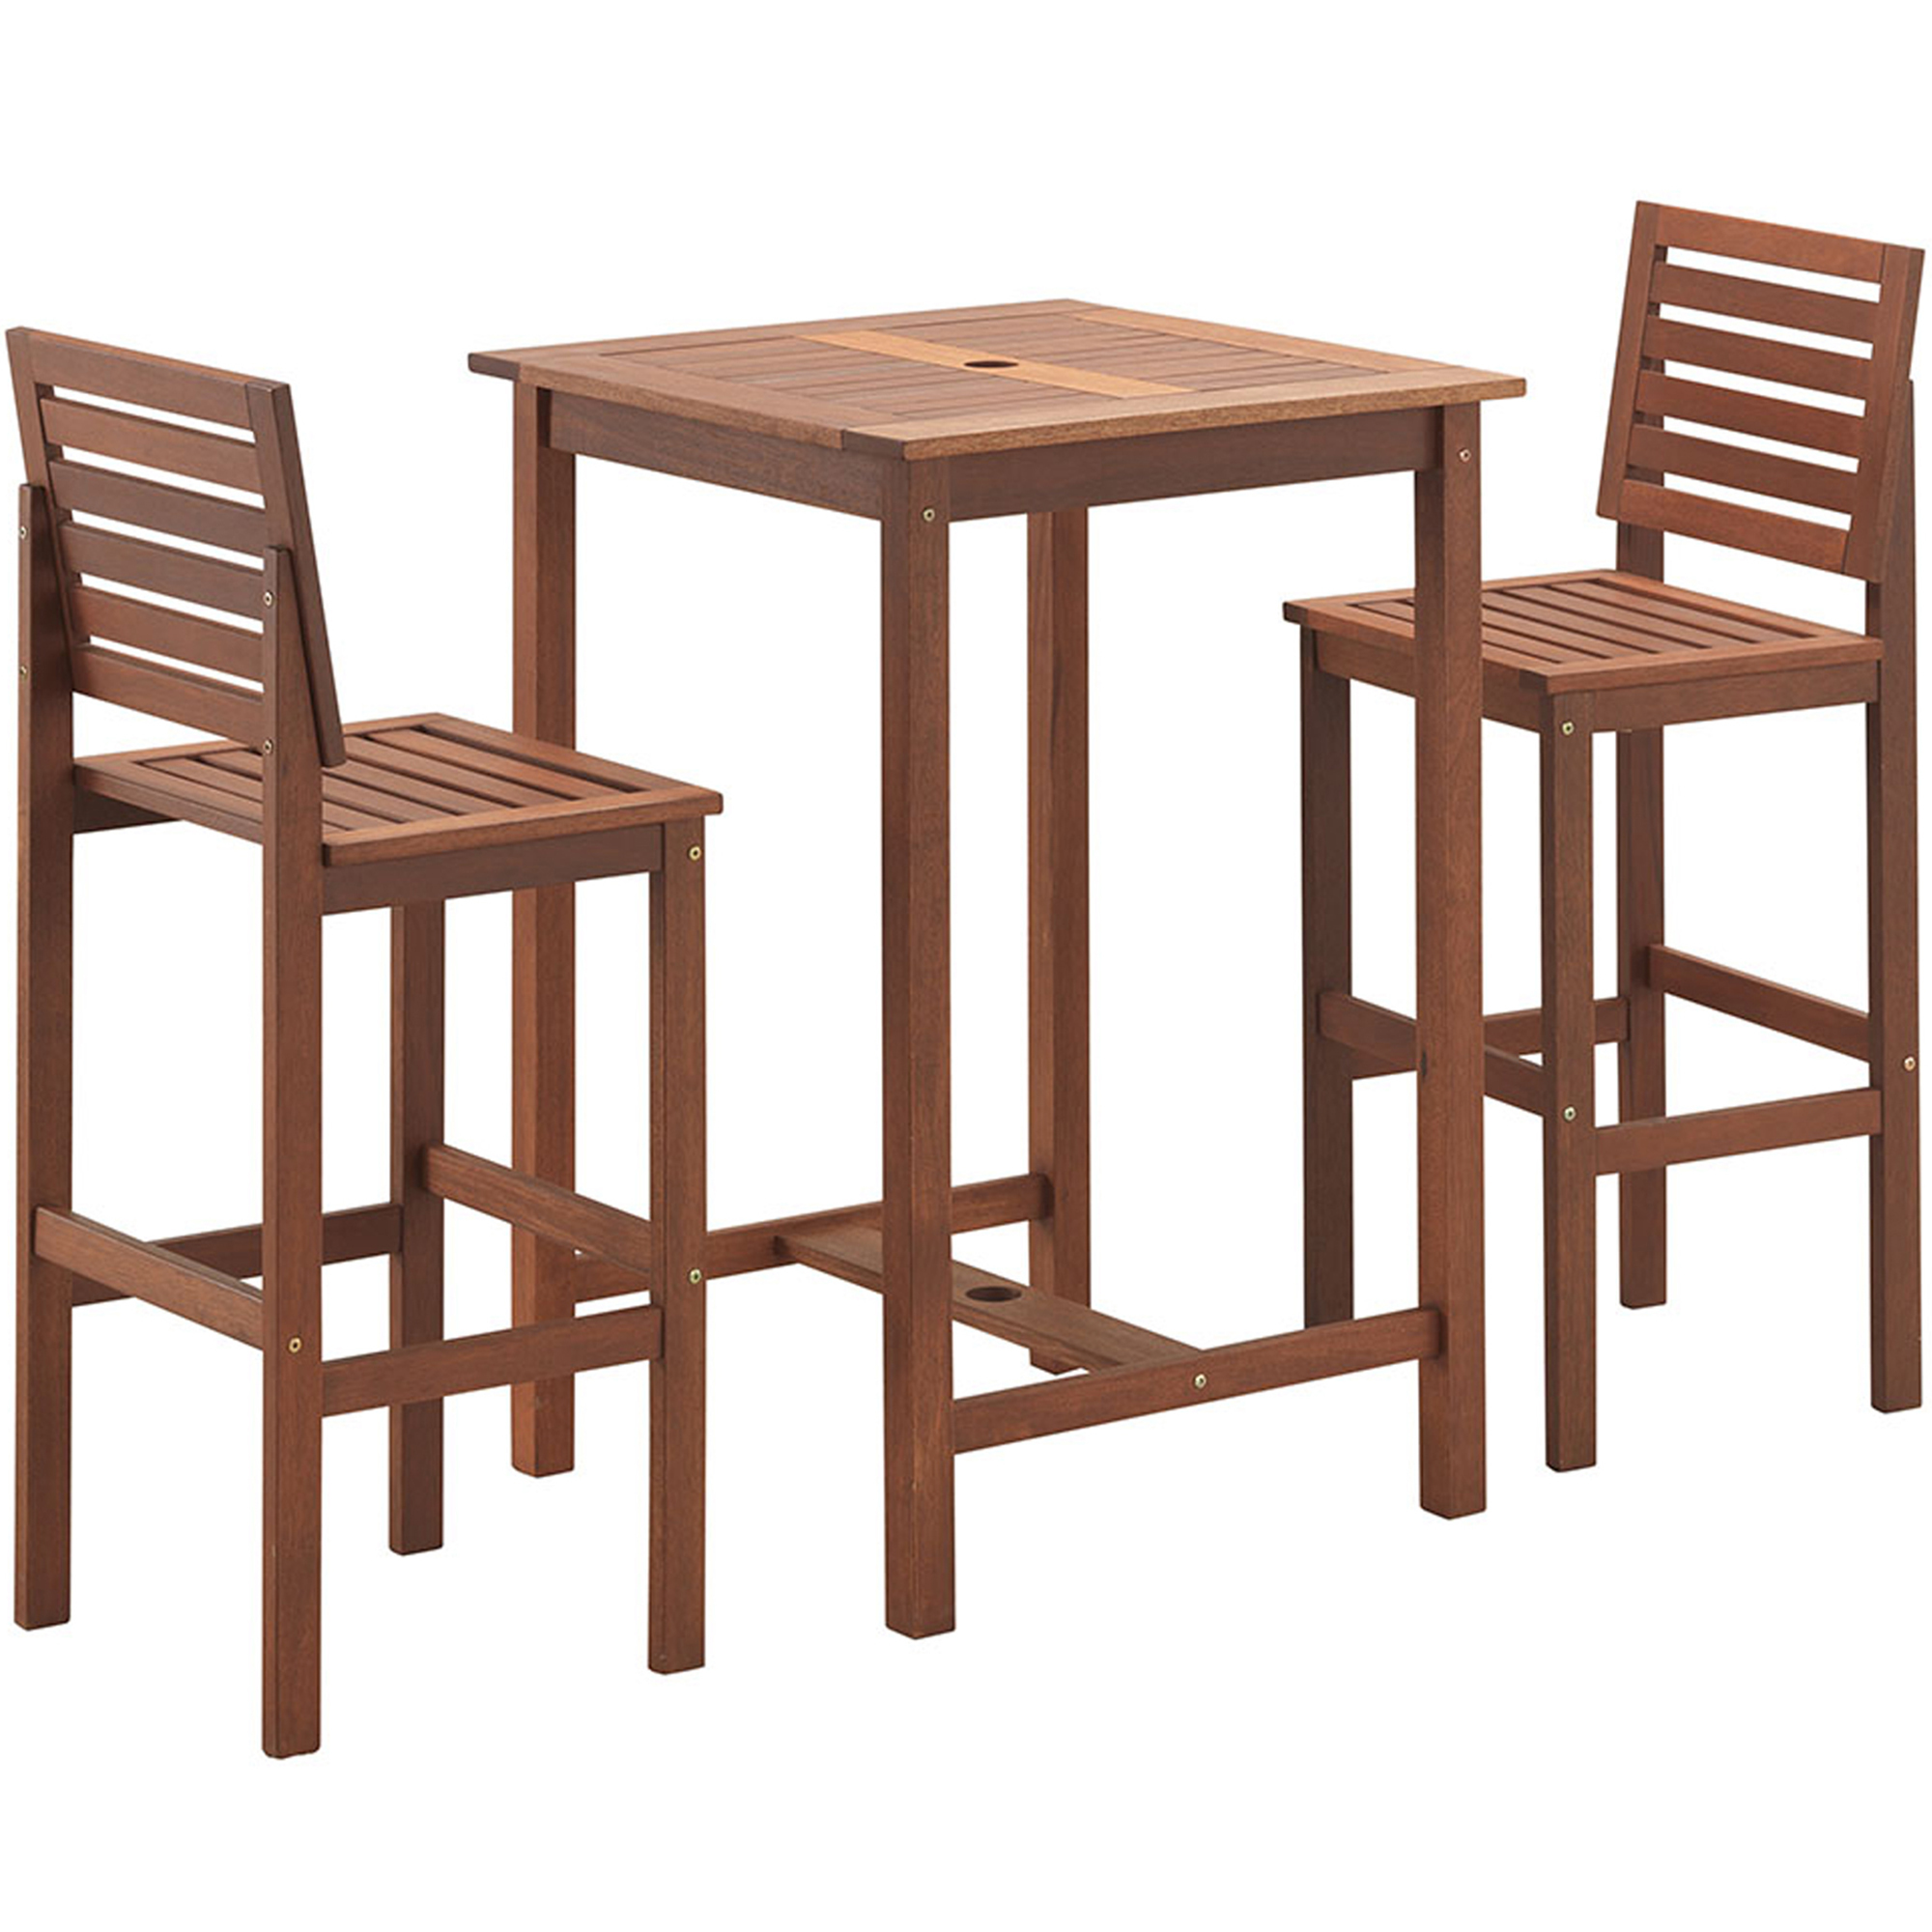 Outdoor Bar Tables And Stools Gallery Bar Height Dining